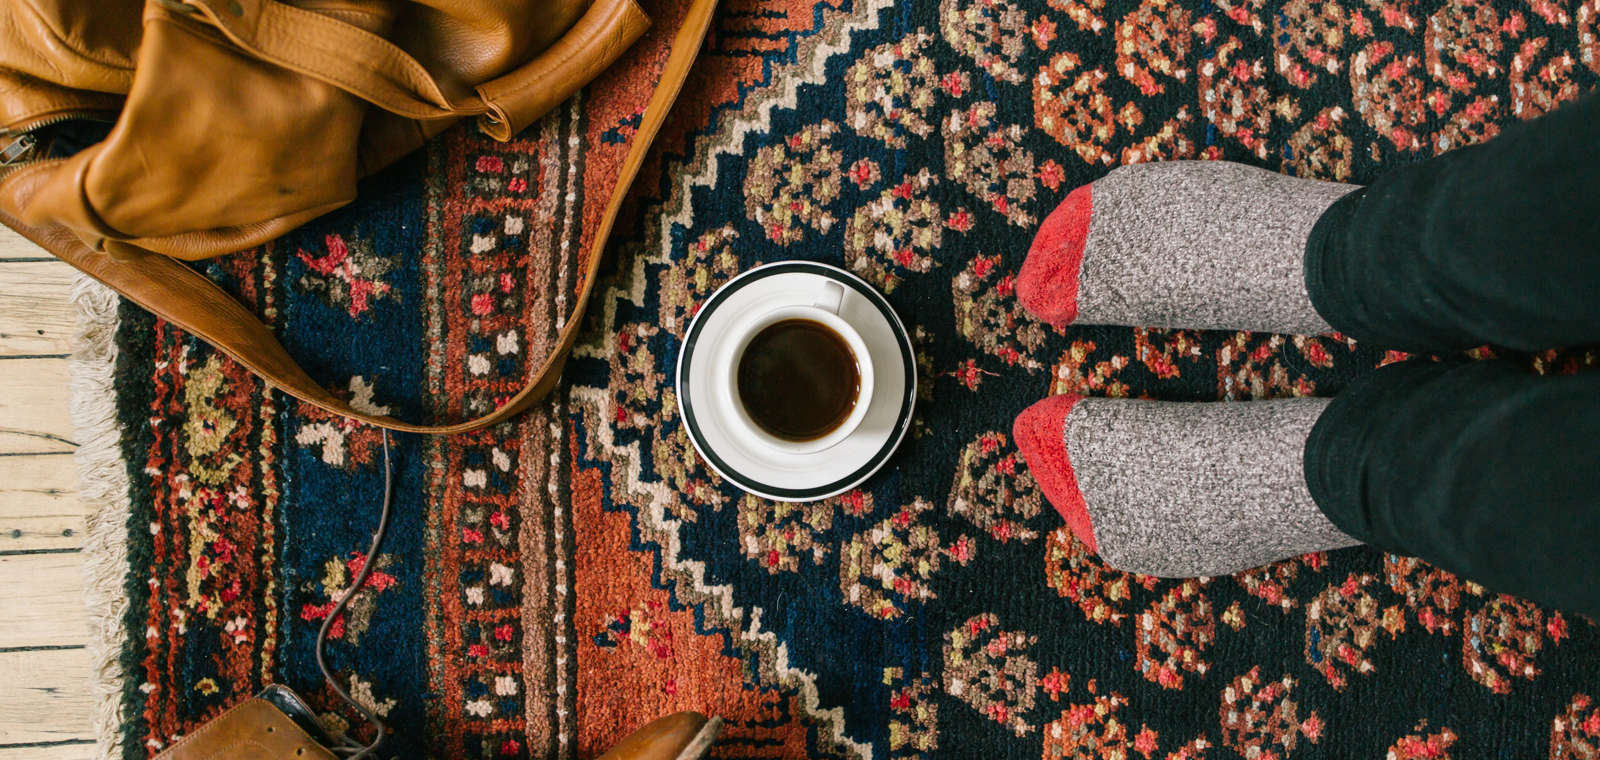 fall staycation, cozy guest room photo, coffee, socked feet